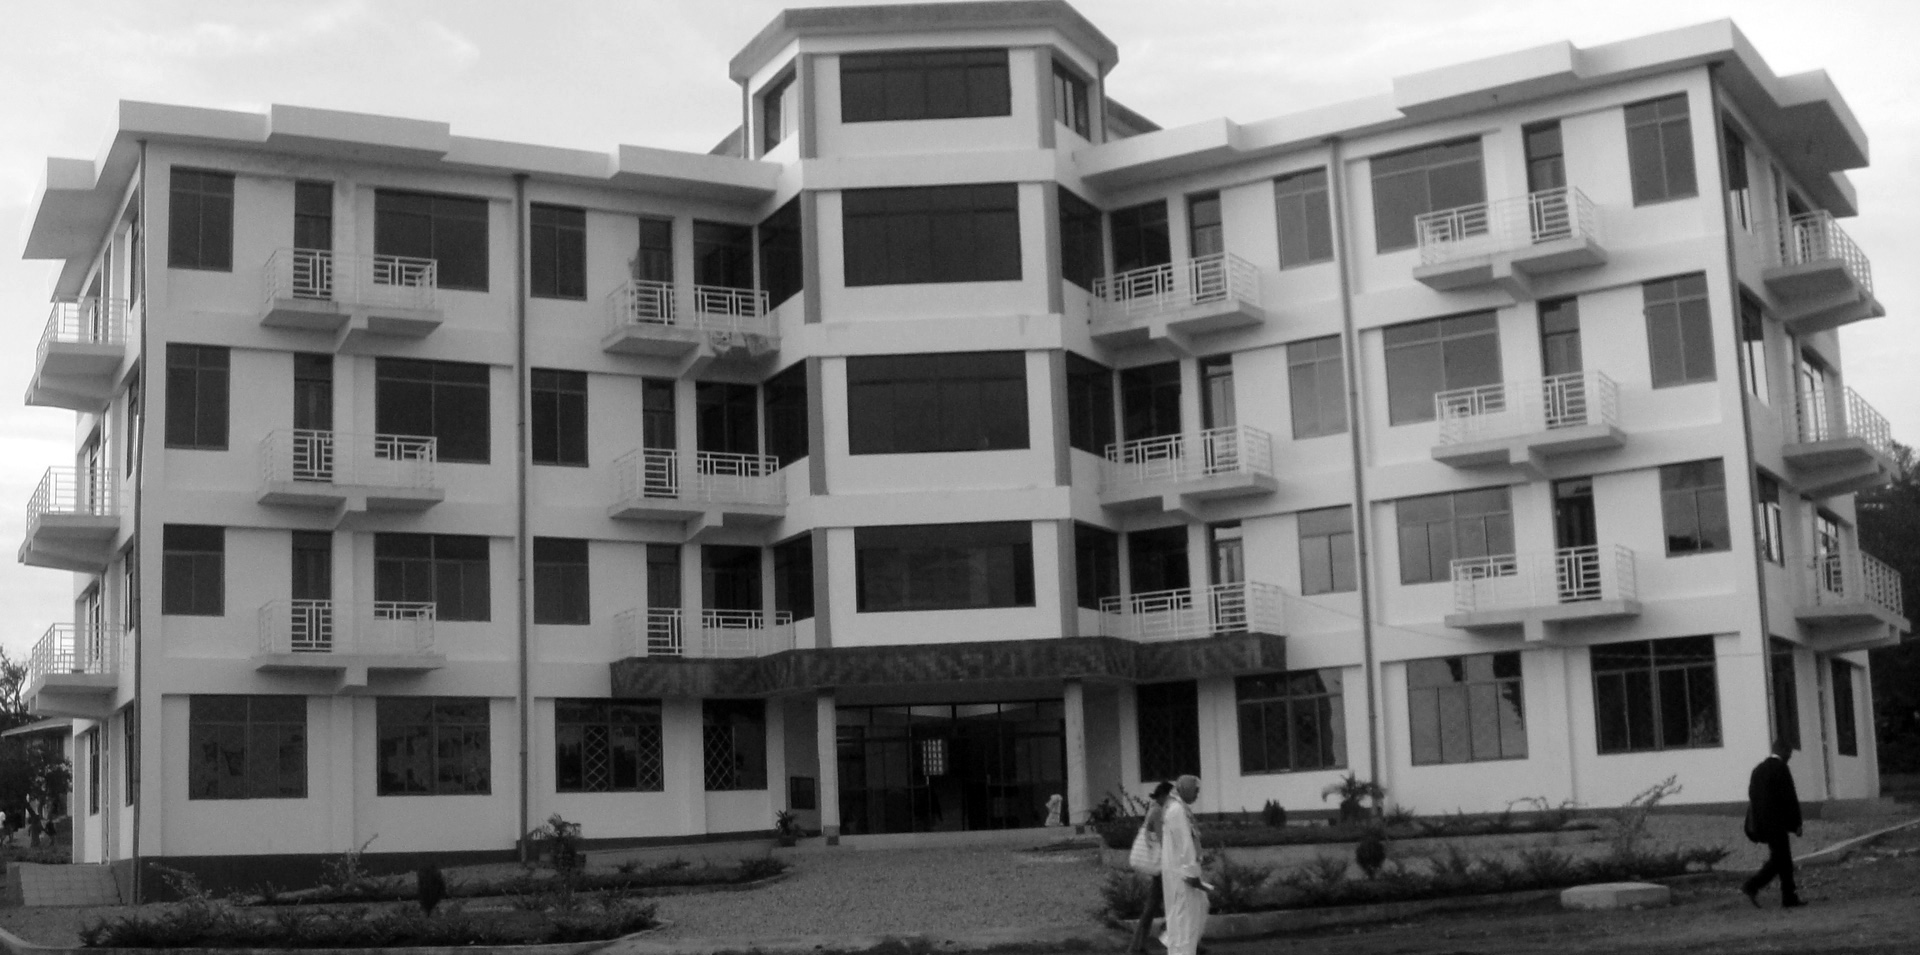 The administration building of Saint Augustine University of Tanzania